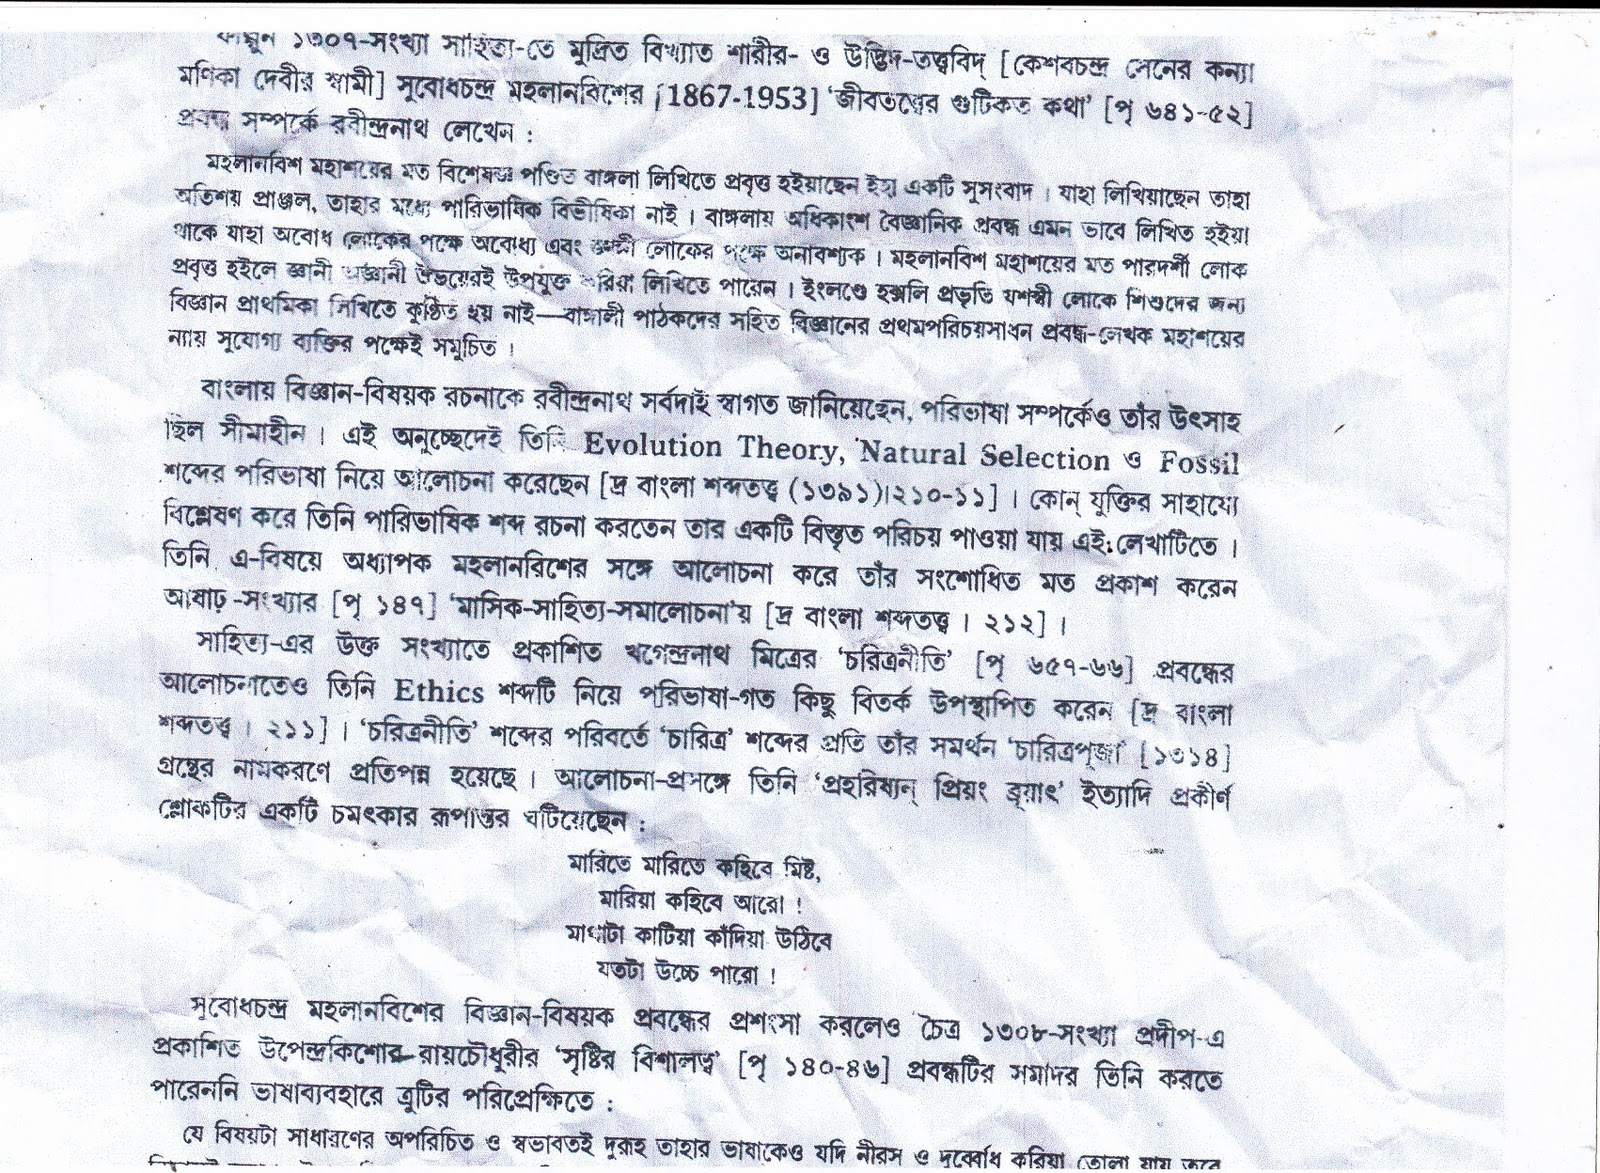 smaraka grantha 2010 in this respect he praised mahalanabish s essay in bengali on a science subject he translated centripetal force and centrifugal force in bengali as